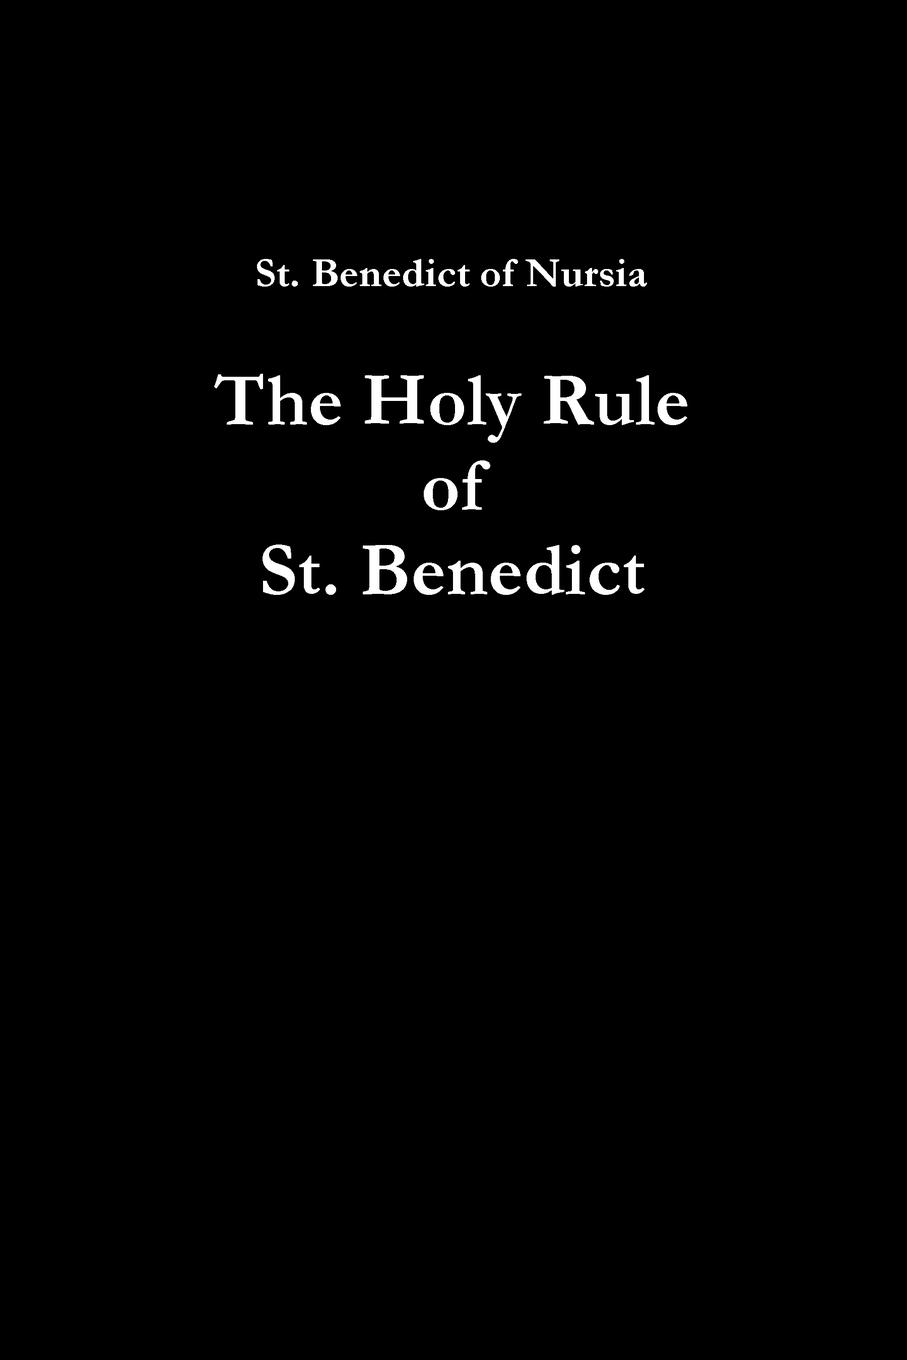 St Benedict Of Nursia The Holy Rule of St. Benedict